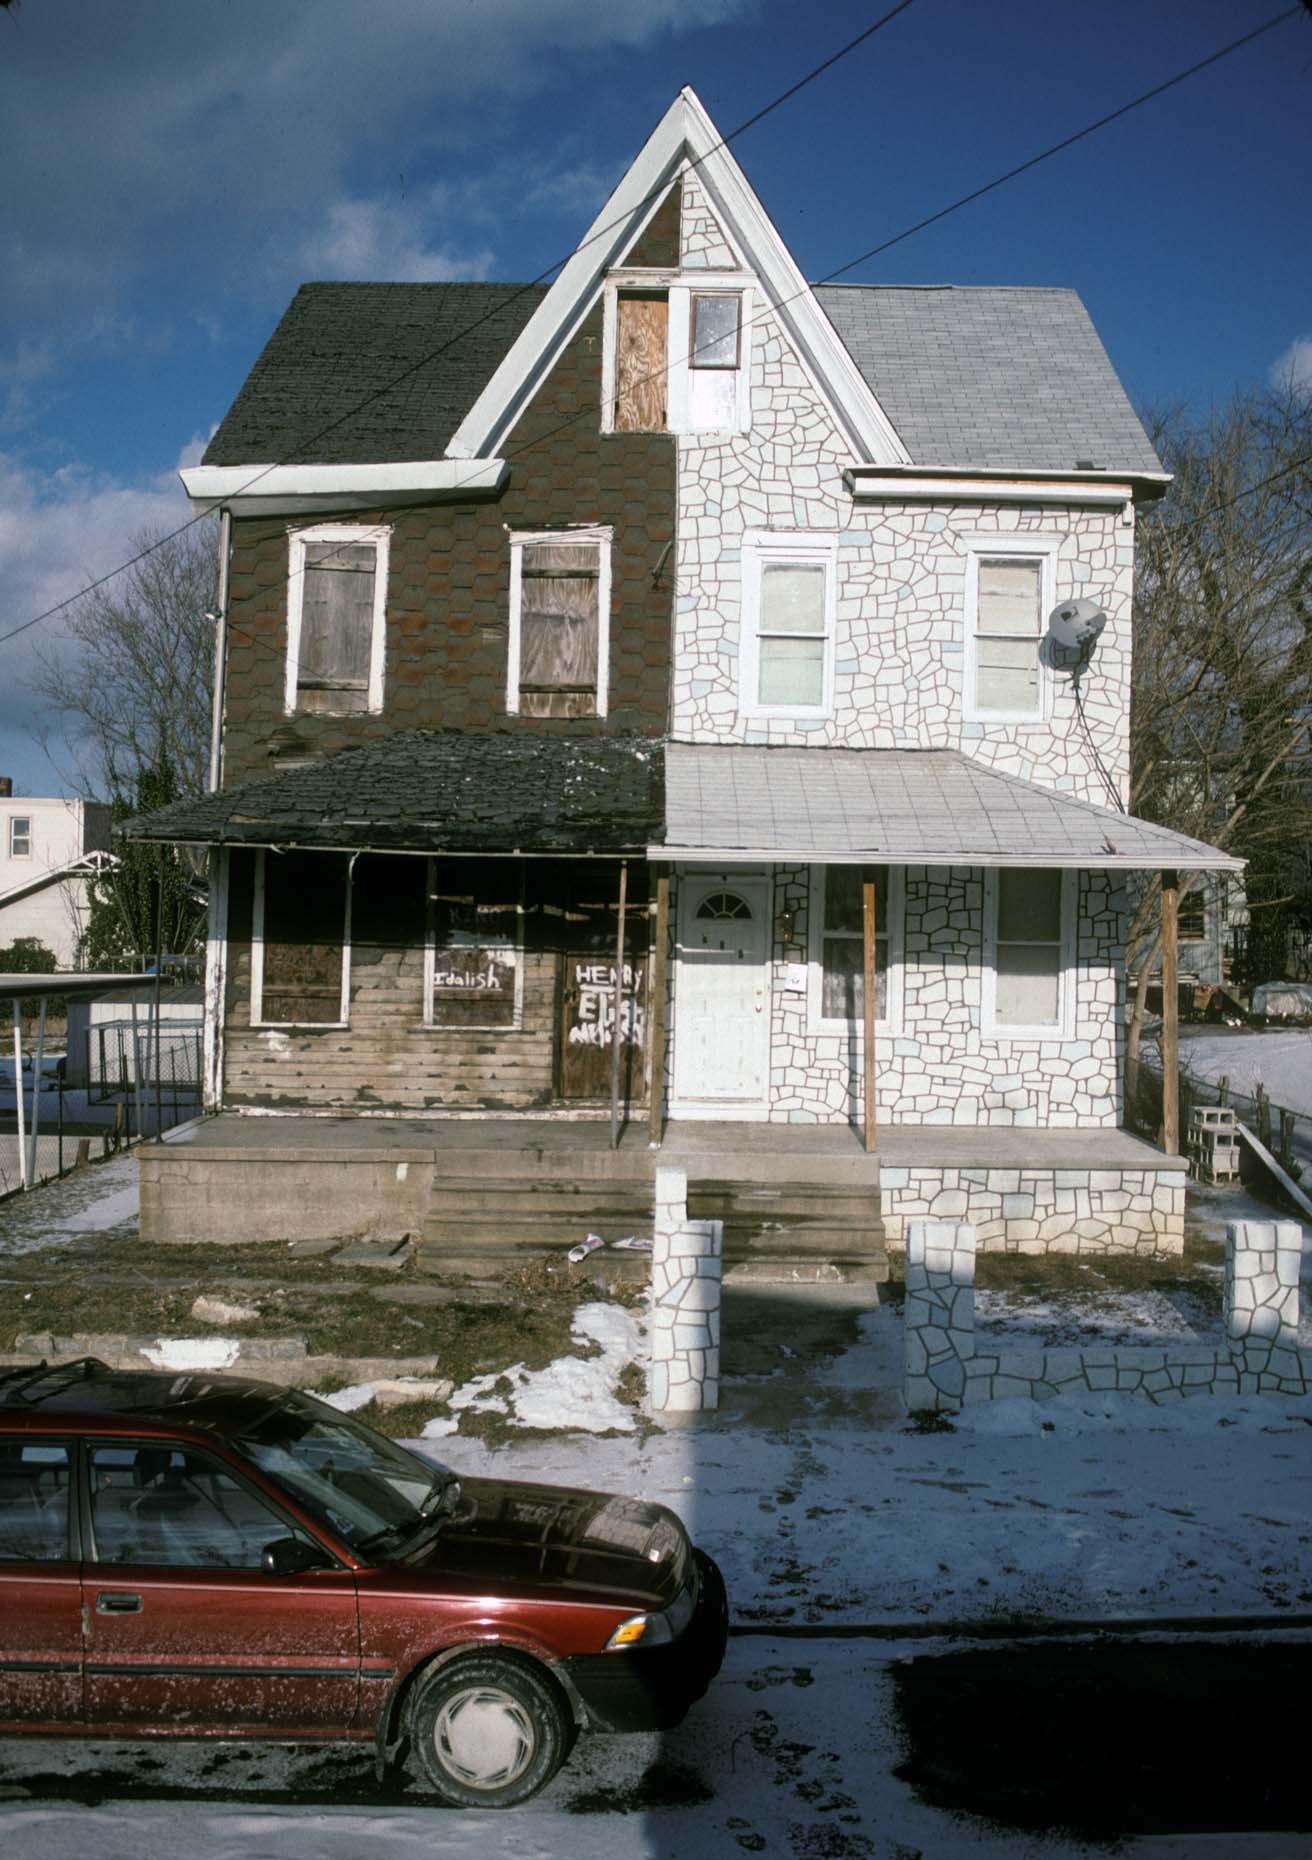 23_908 24th Street, Camden, jan 04.jpg